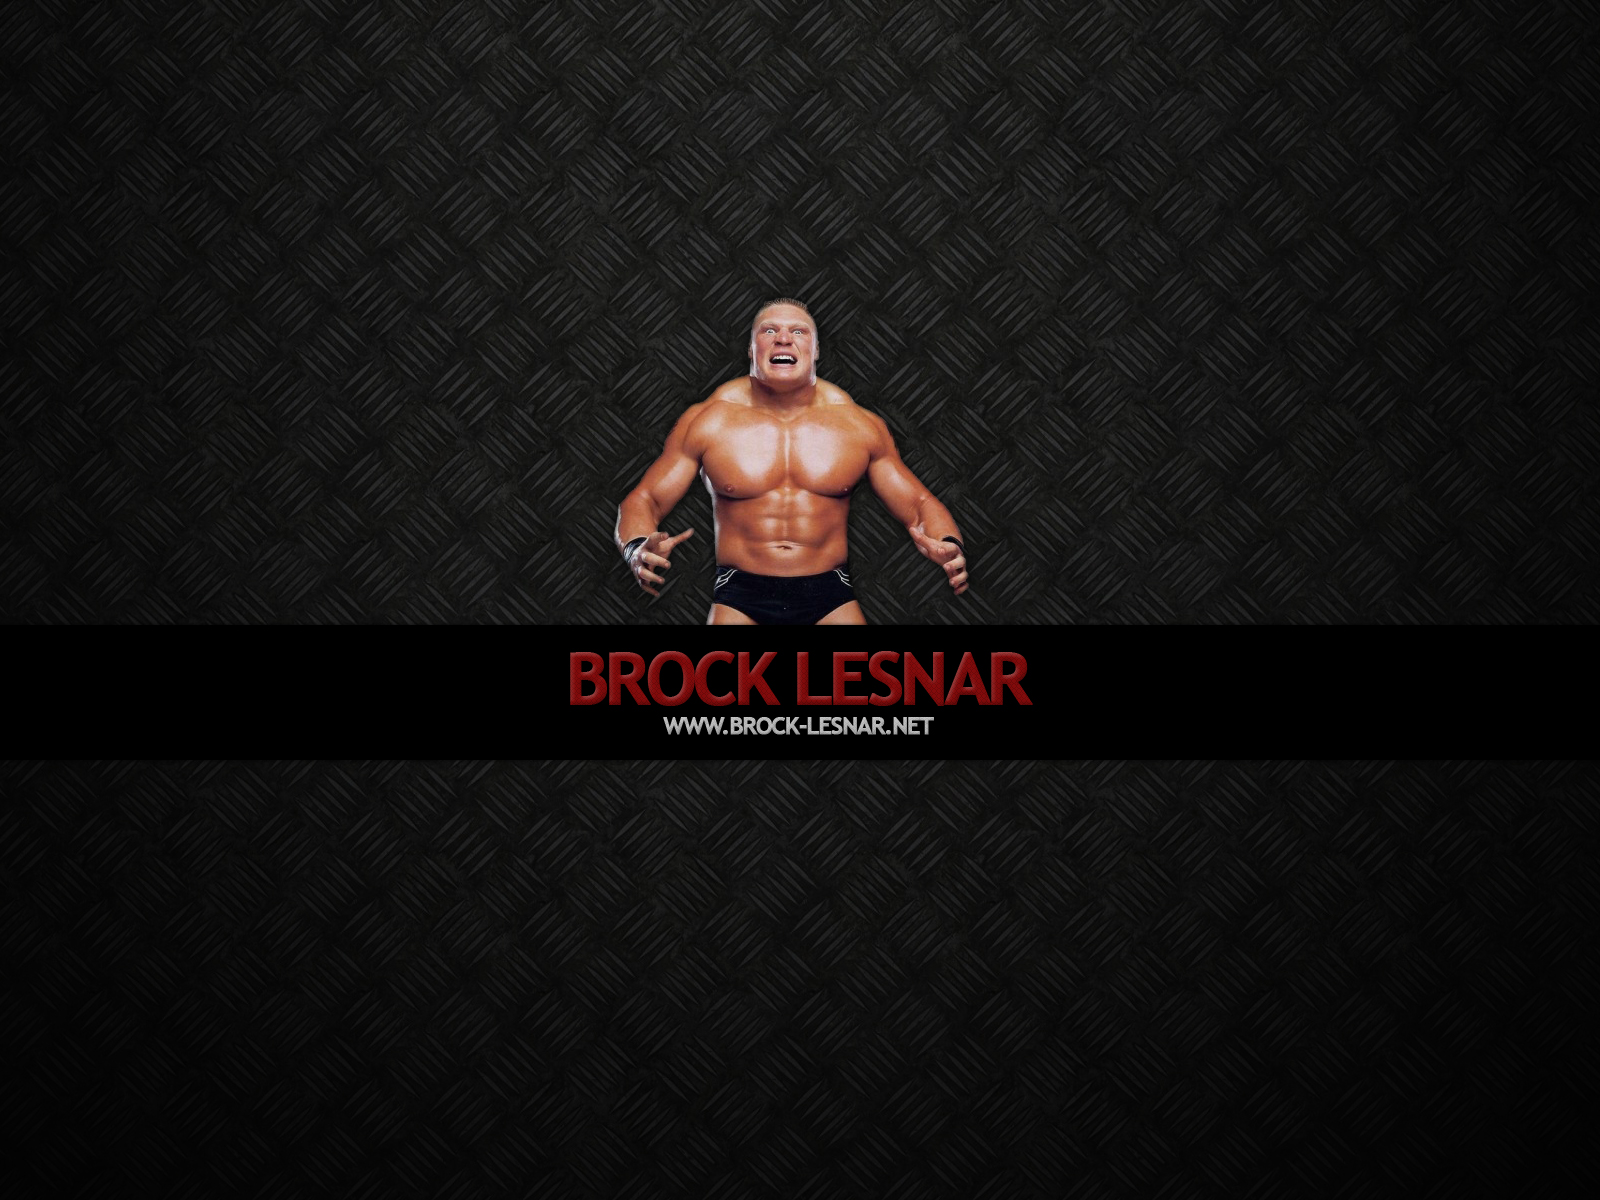 Brock Lesnar Wallpaper wallpapers Brock Lesnar Wallpaper stock 1600x1200